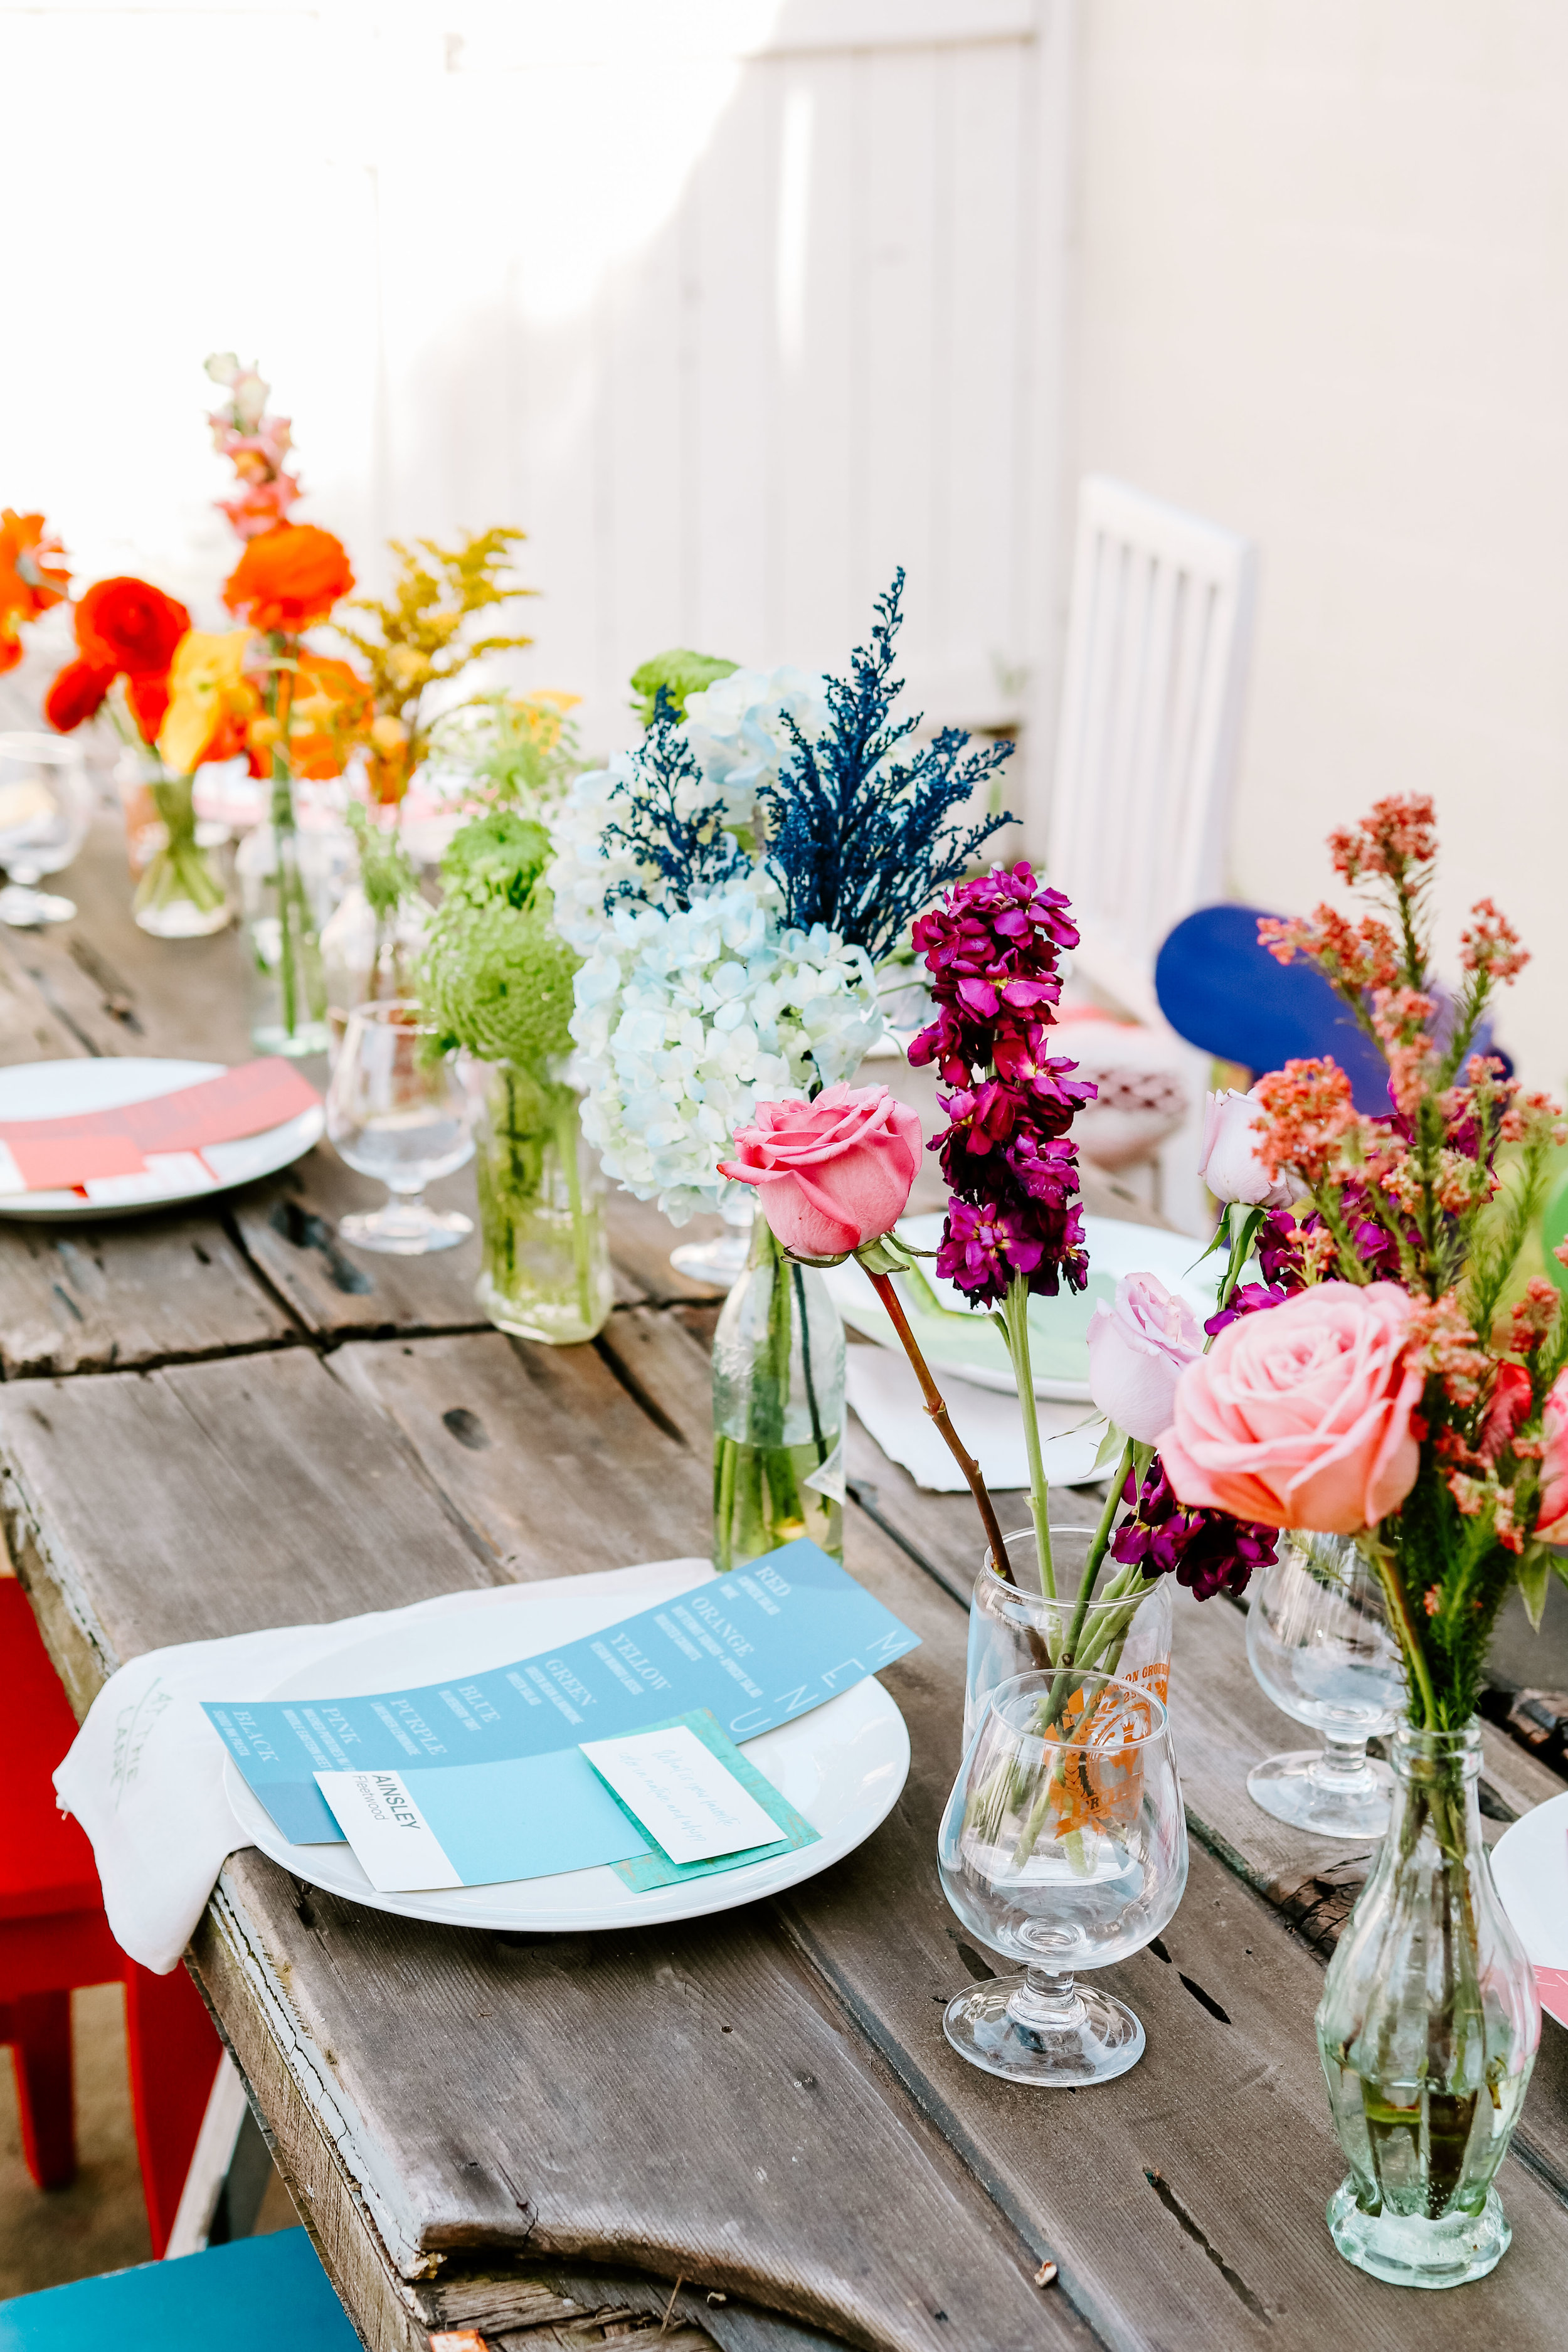 At The Lane - Match A Color Dinner Party-32.jpg